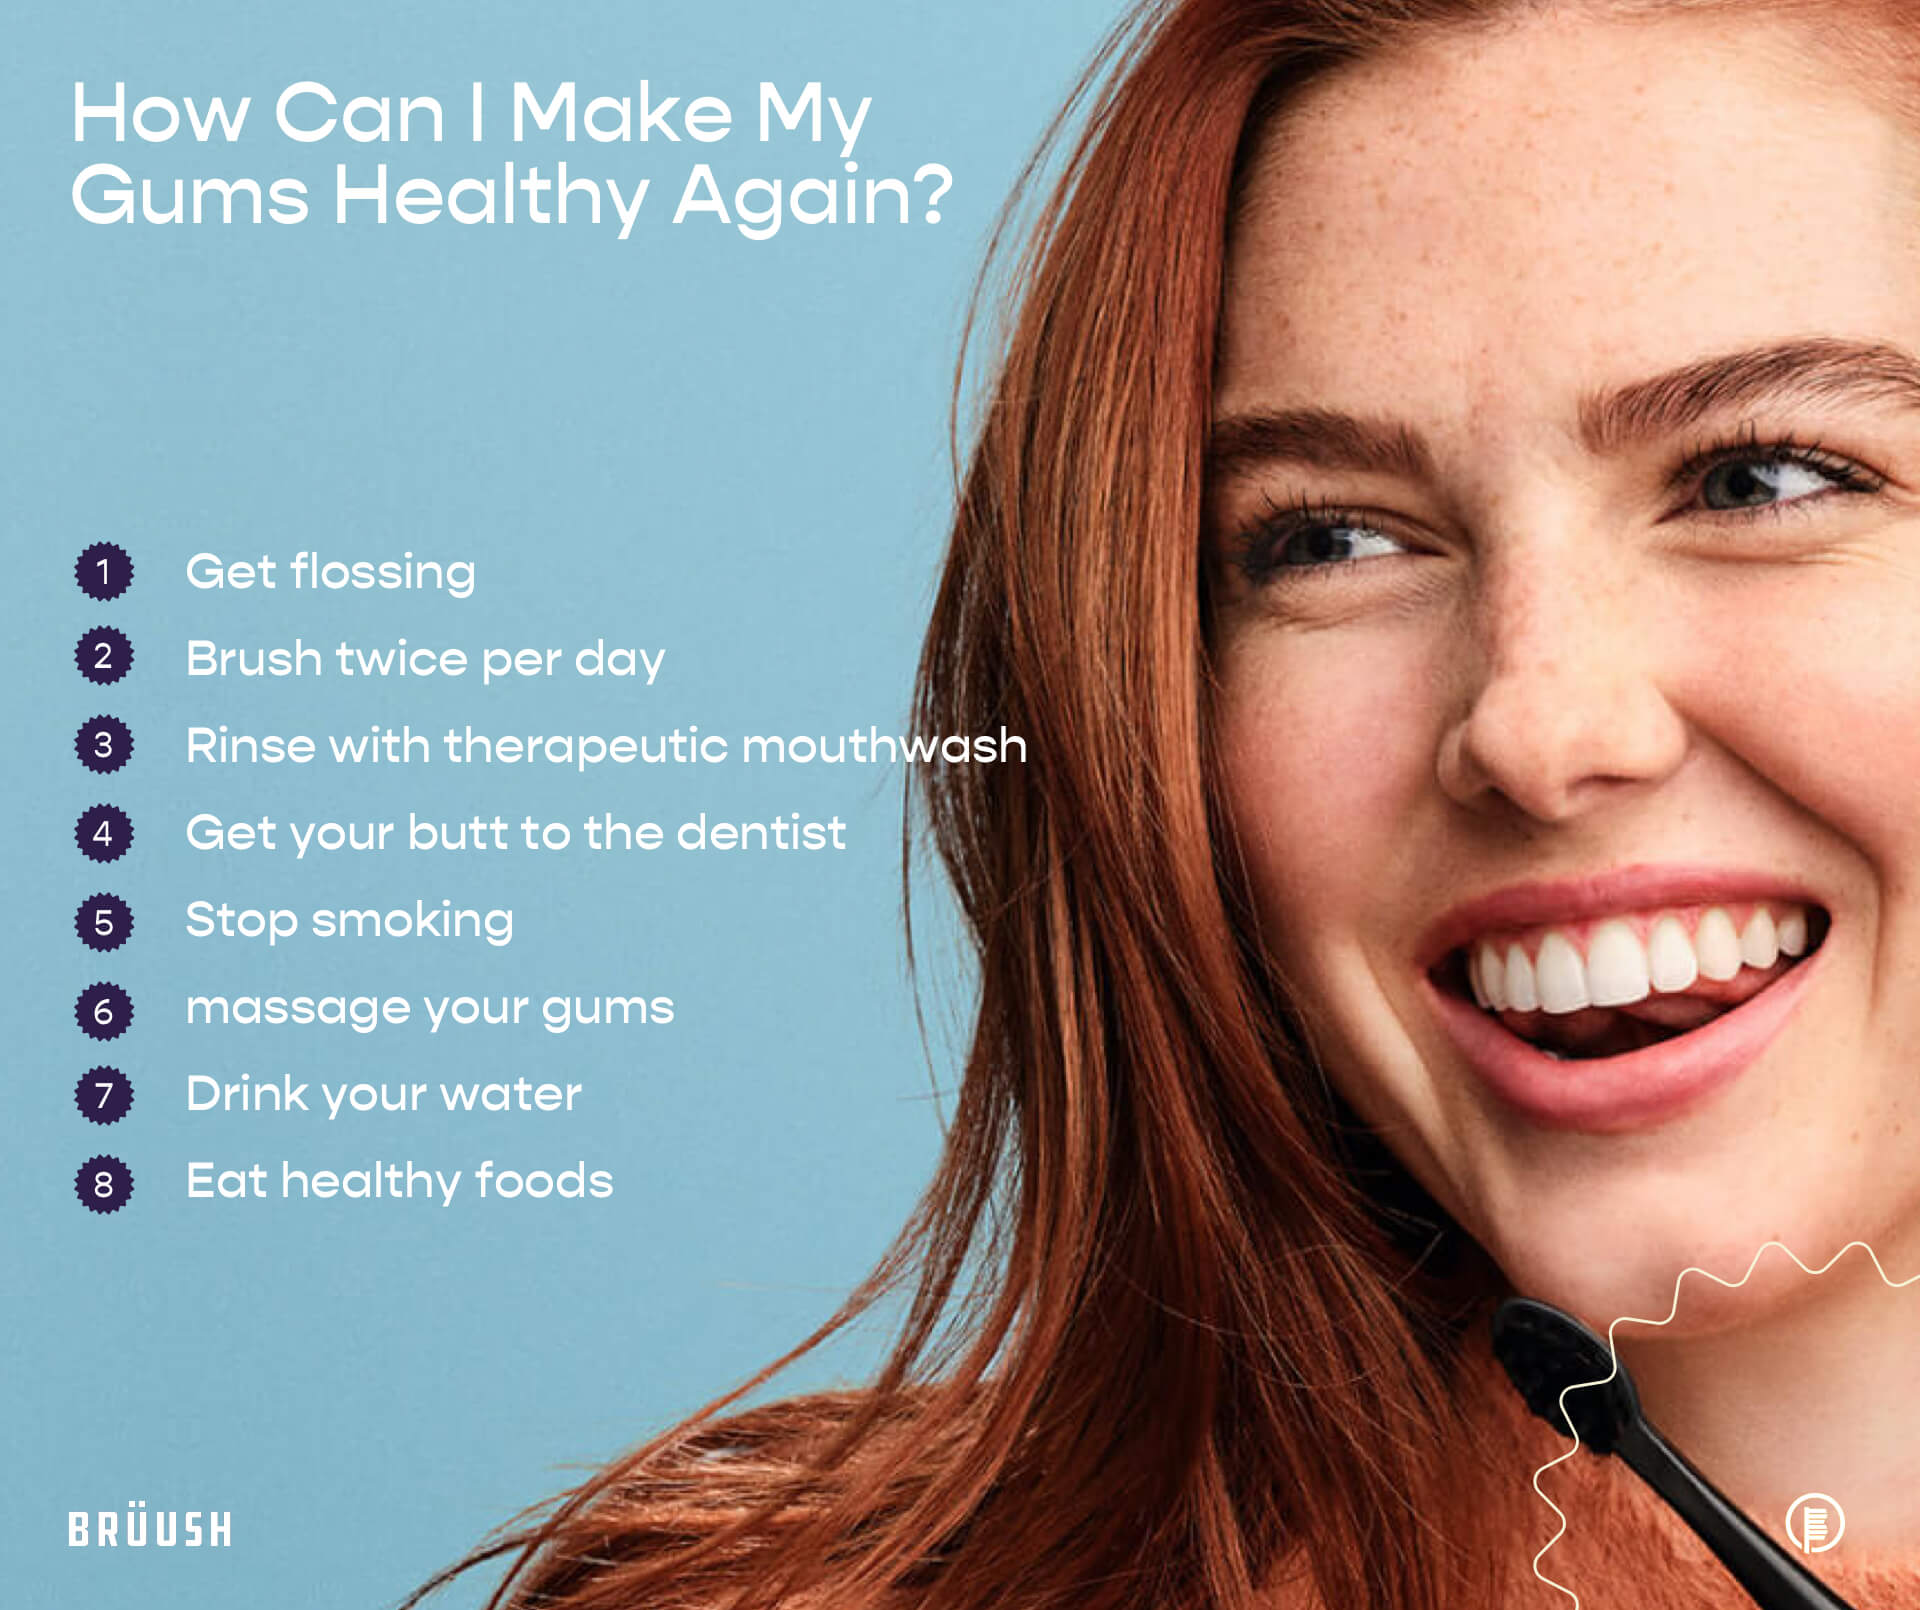 Healthy Gums Checklist (How to tell if your gums are healthy):